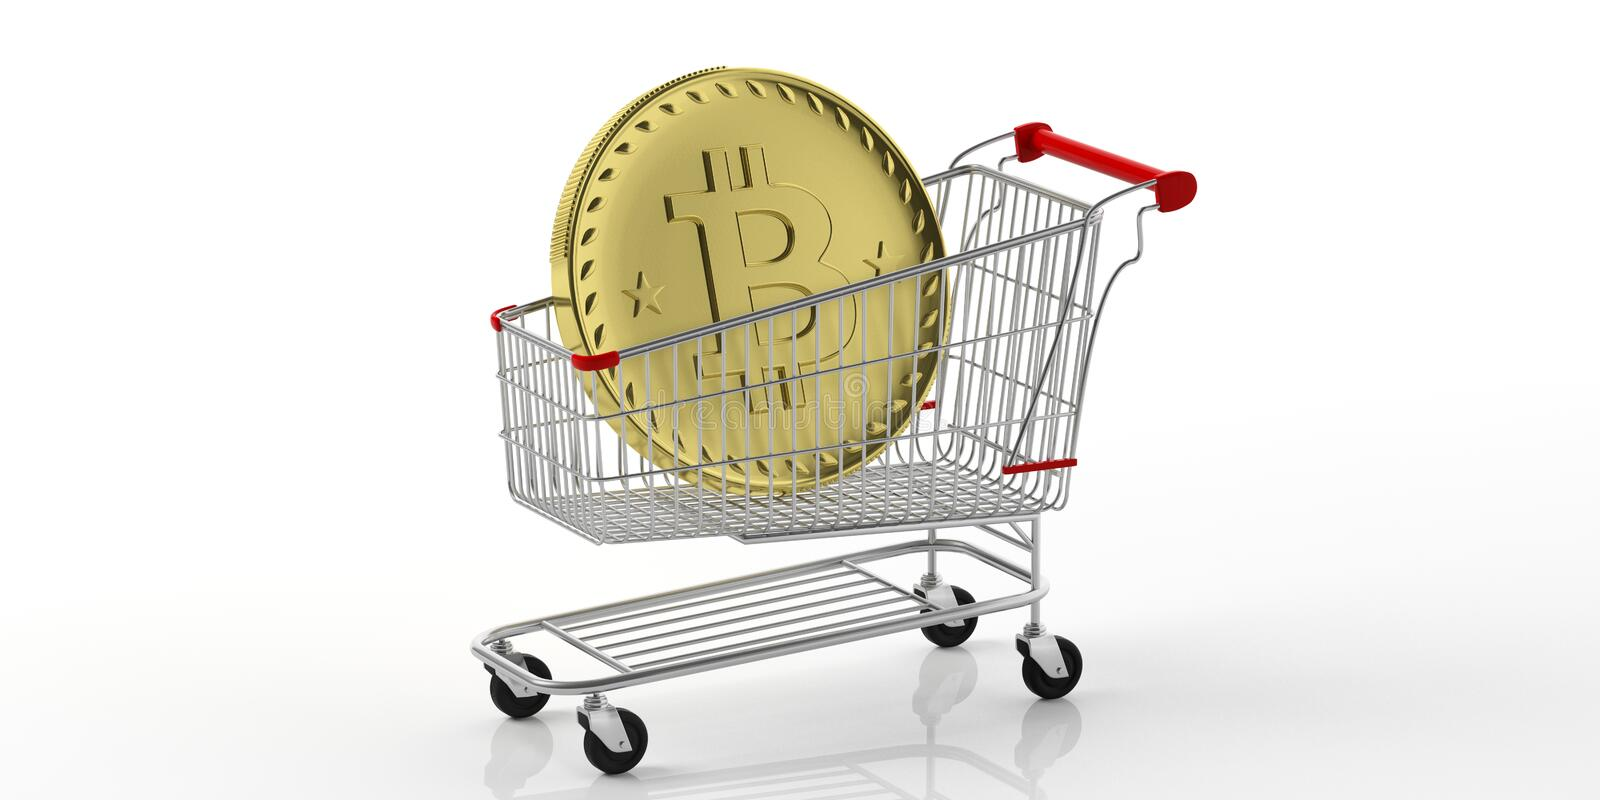 Guld- bitcoin i en shoppingvagn som isoleras på vit bakgrund illustration 3d royaltyfri illustrationer